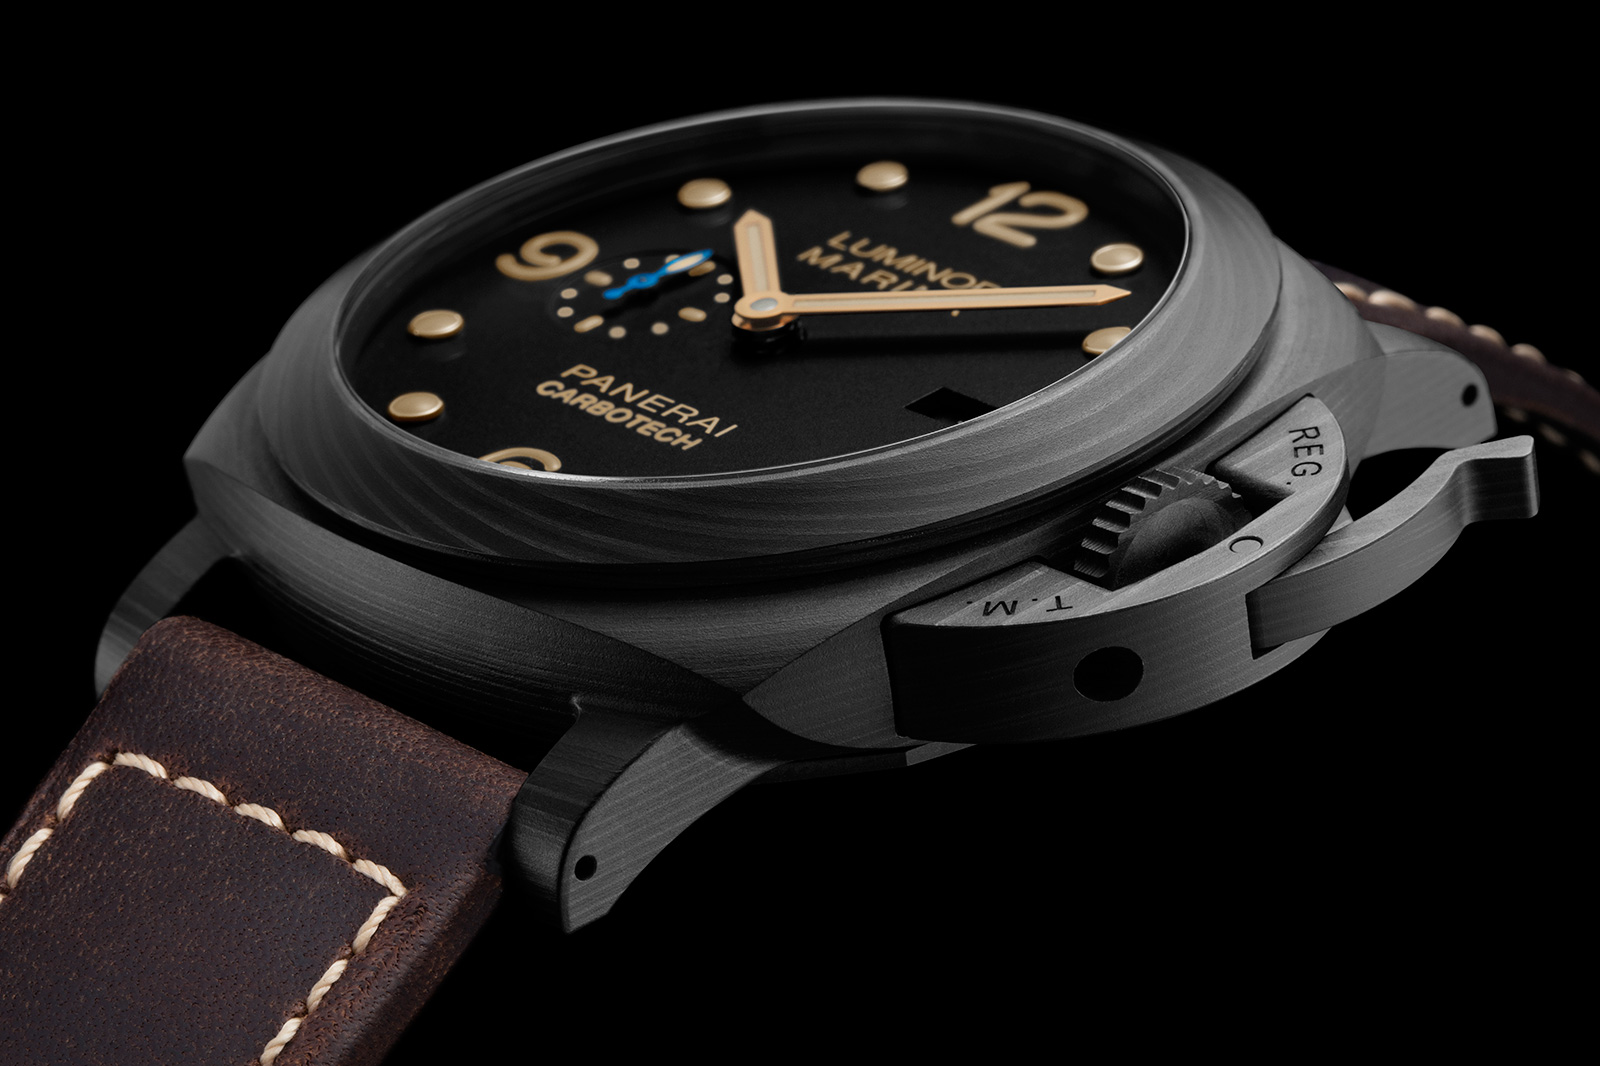 The special copy watches are made from Carbotech.